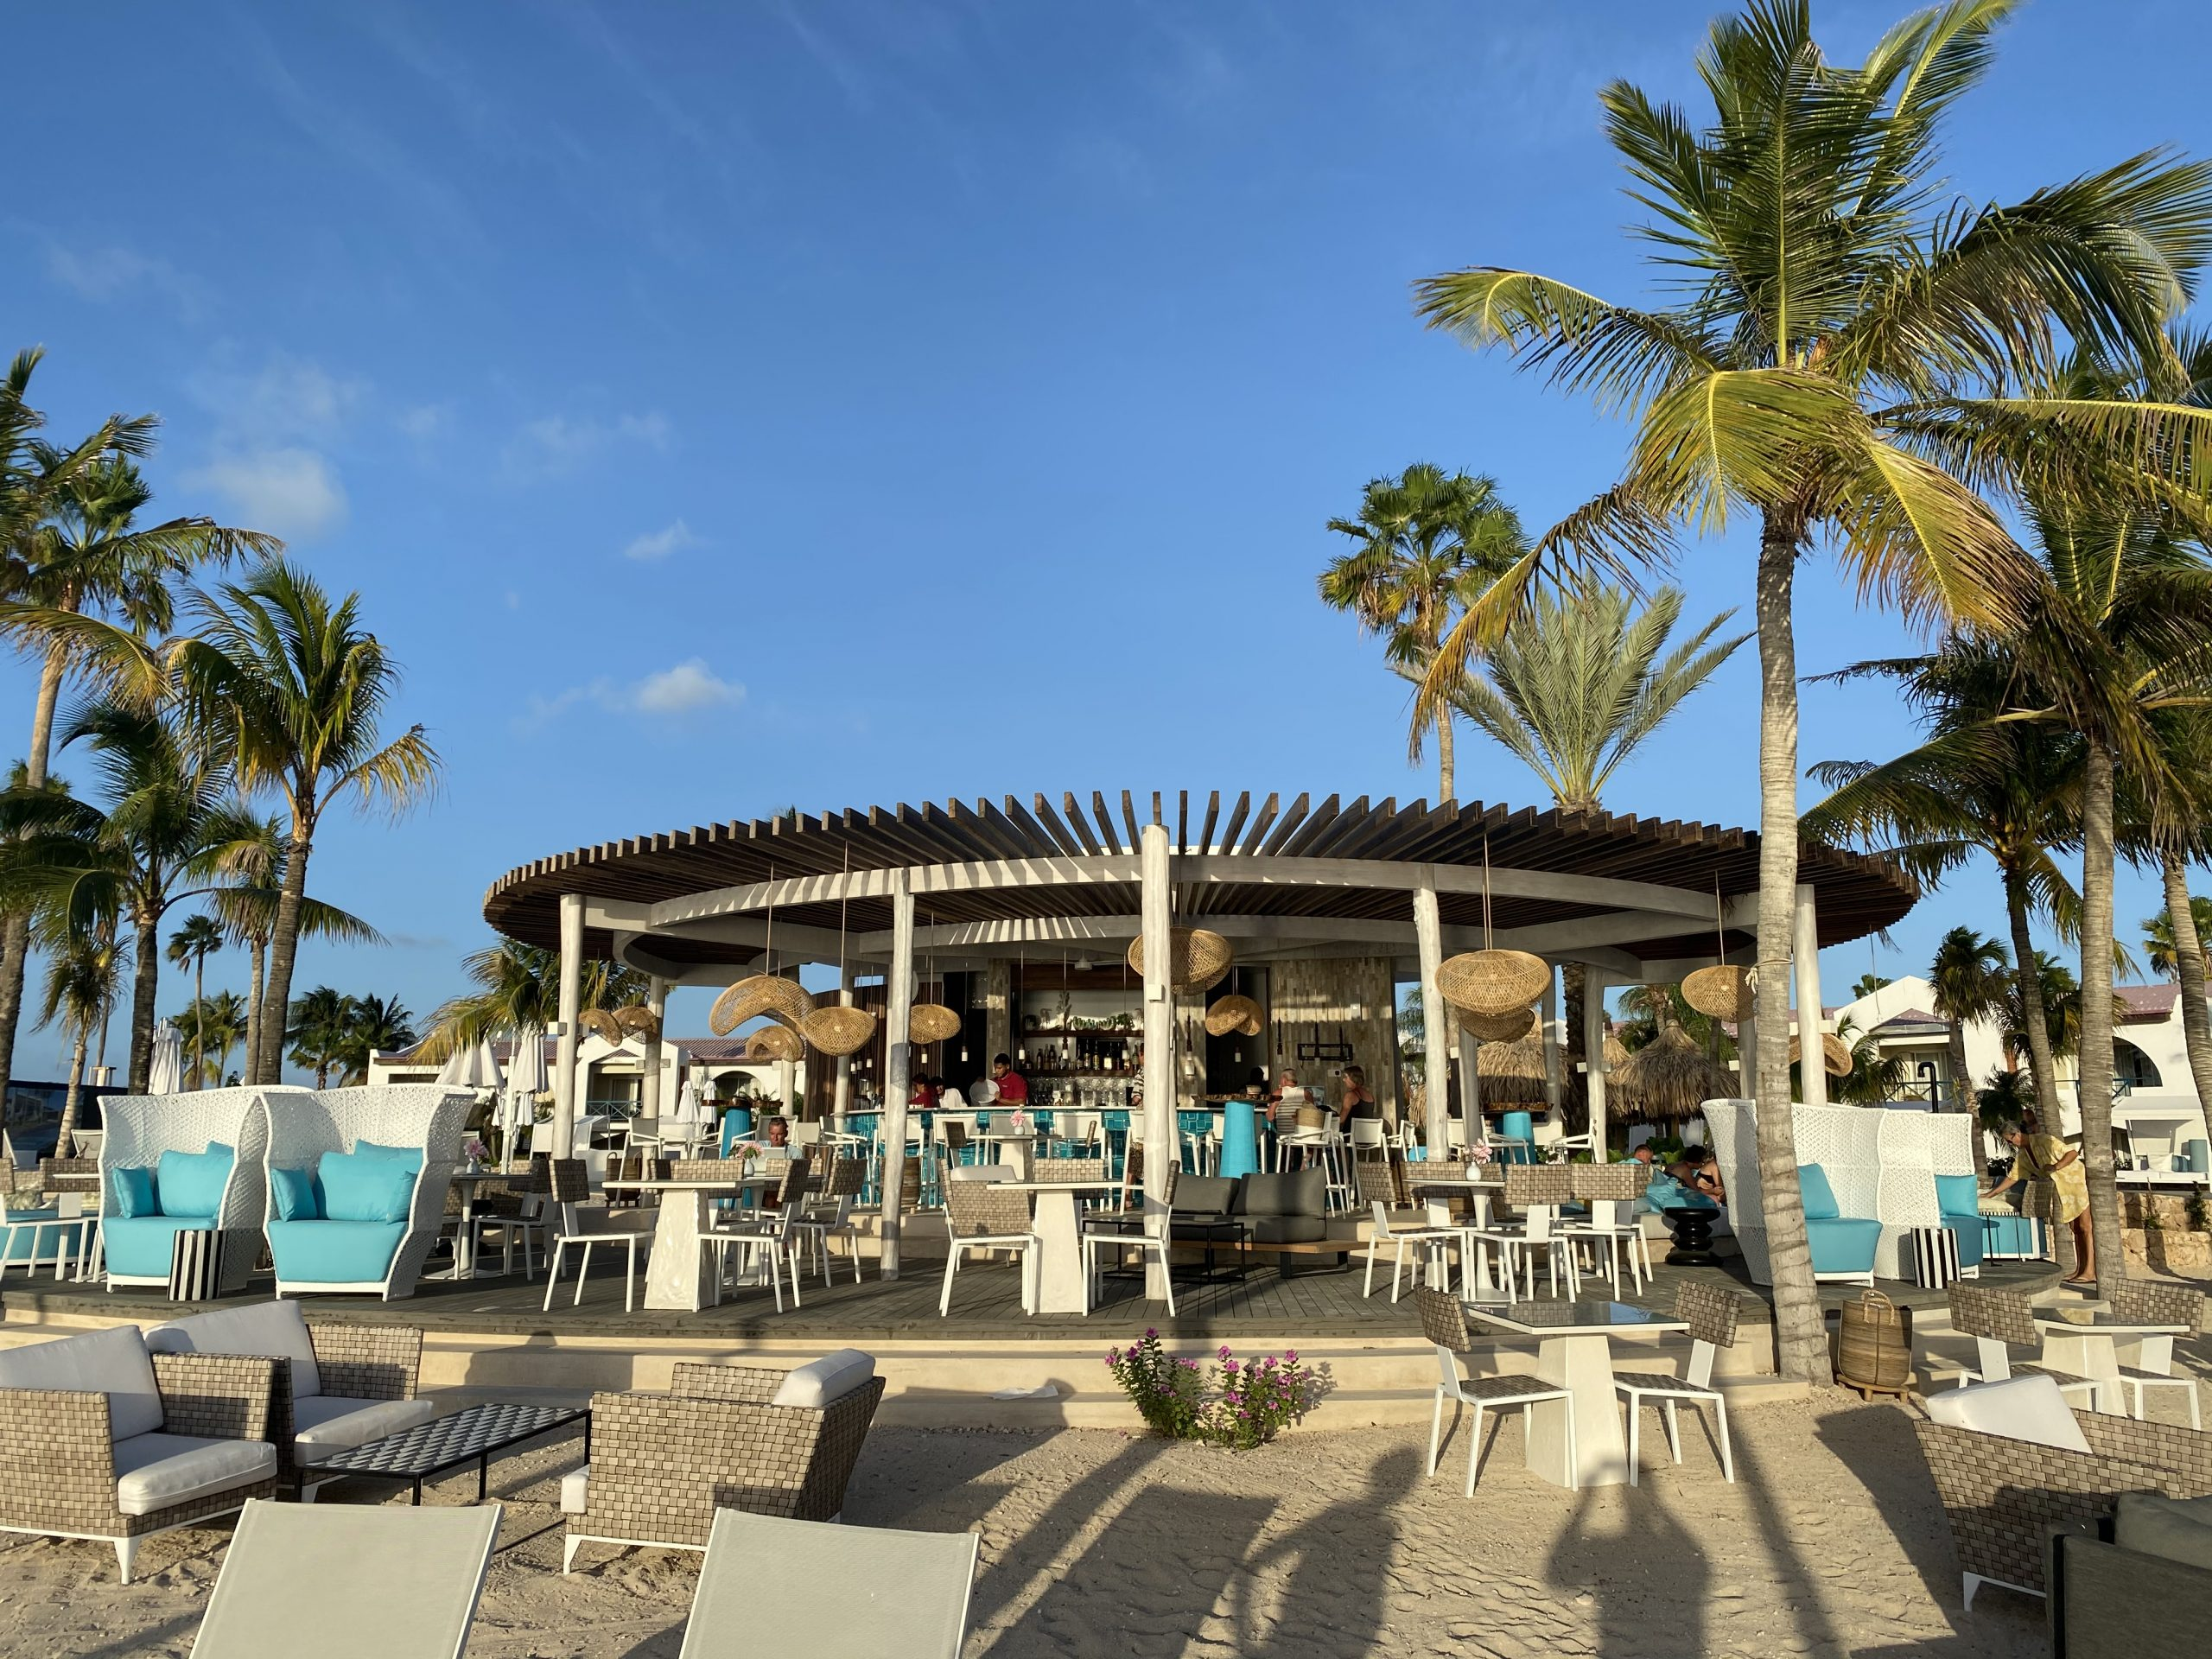 Beach bar Plaza Resort Bonaire AG architecten